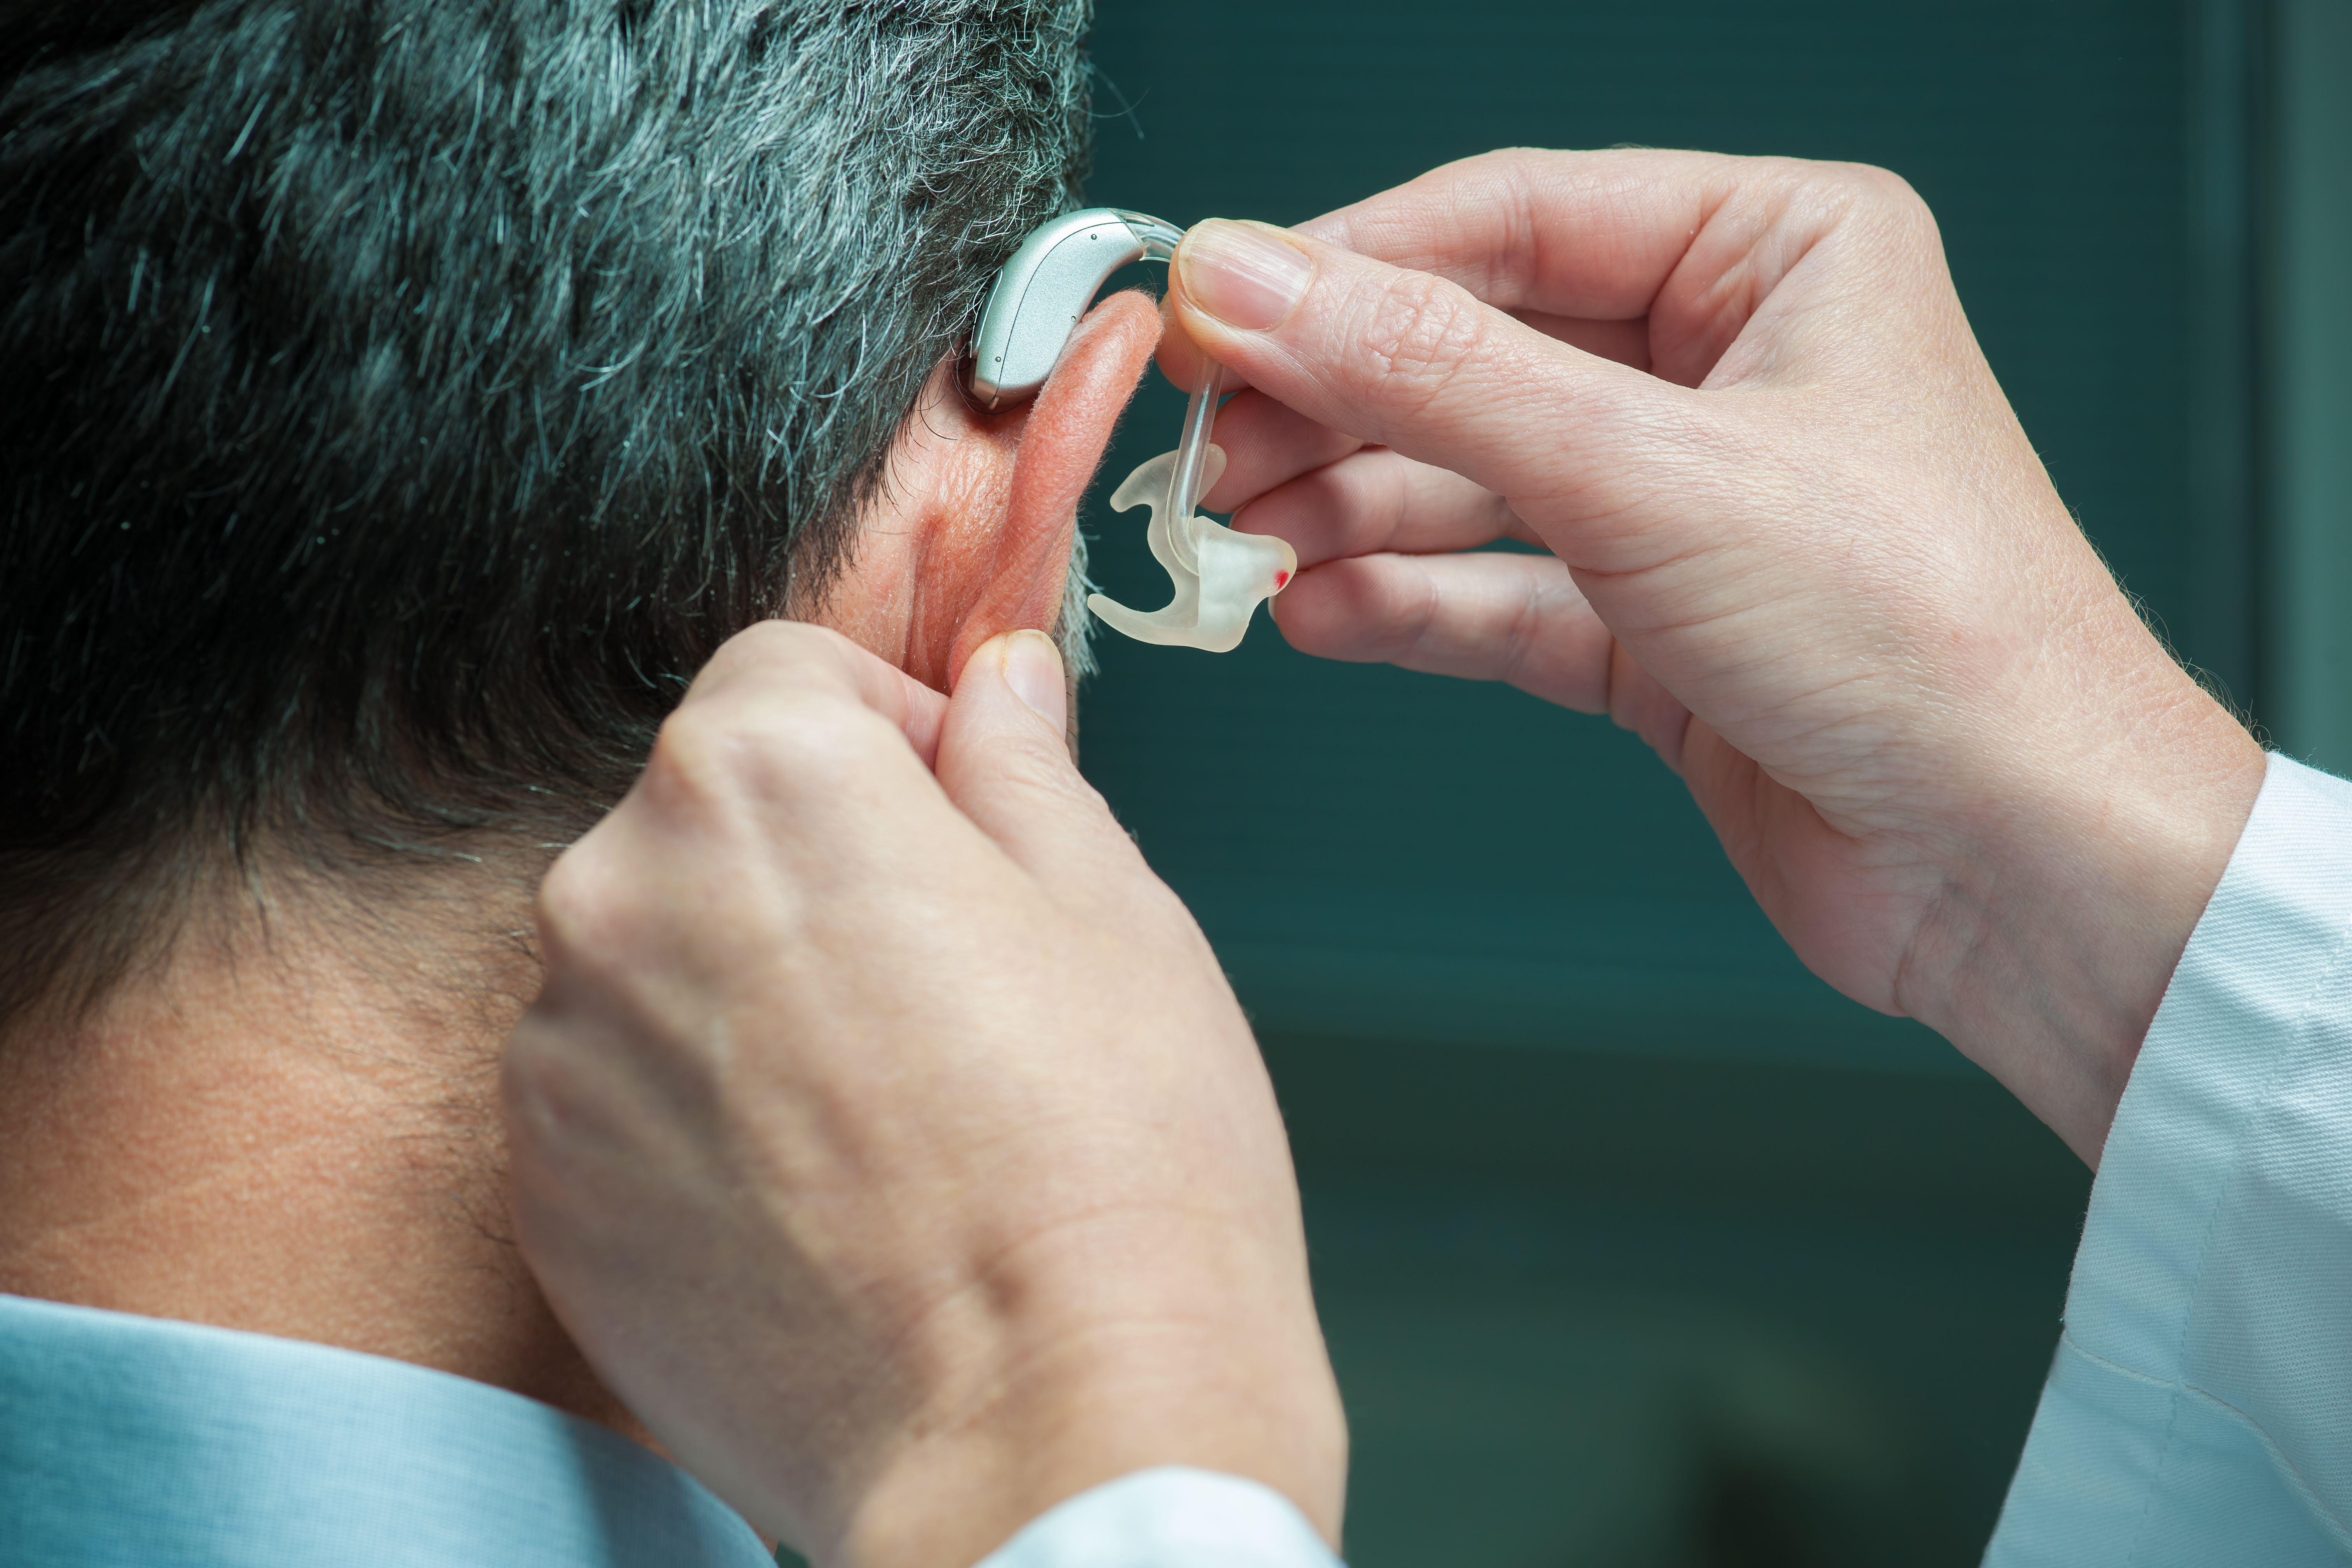 FDA proposes rule for over-the-counter hearing aids